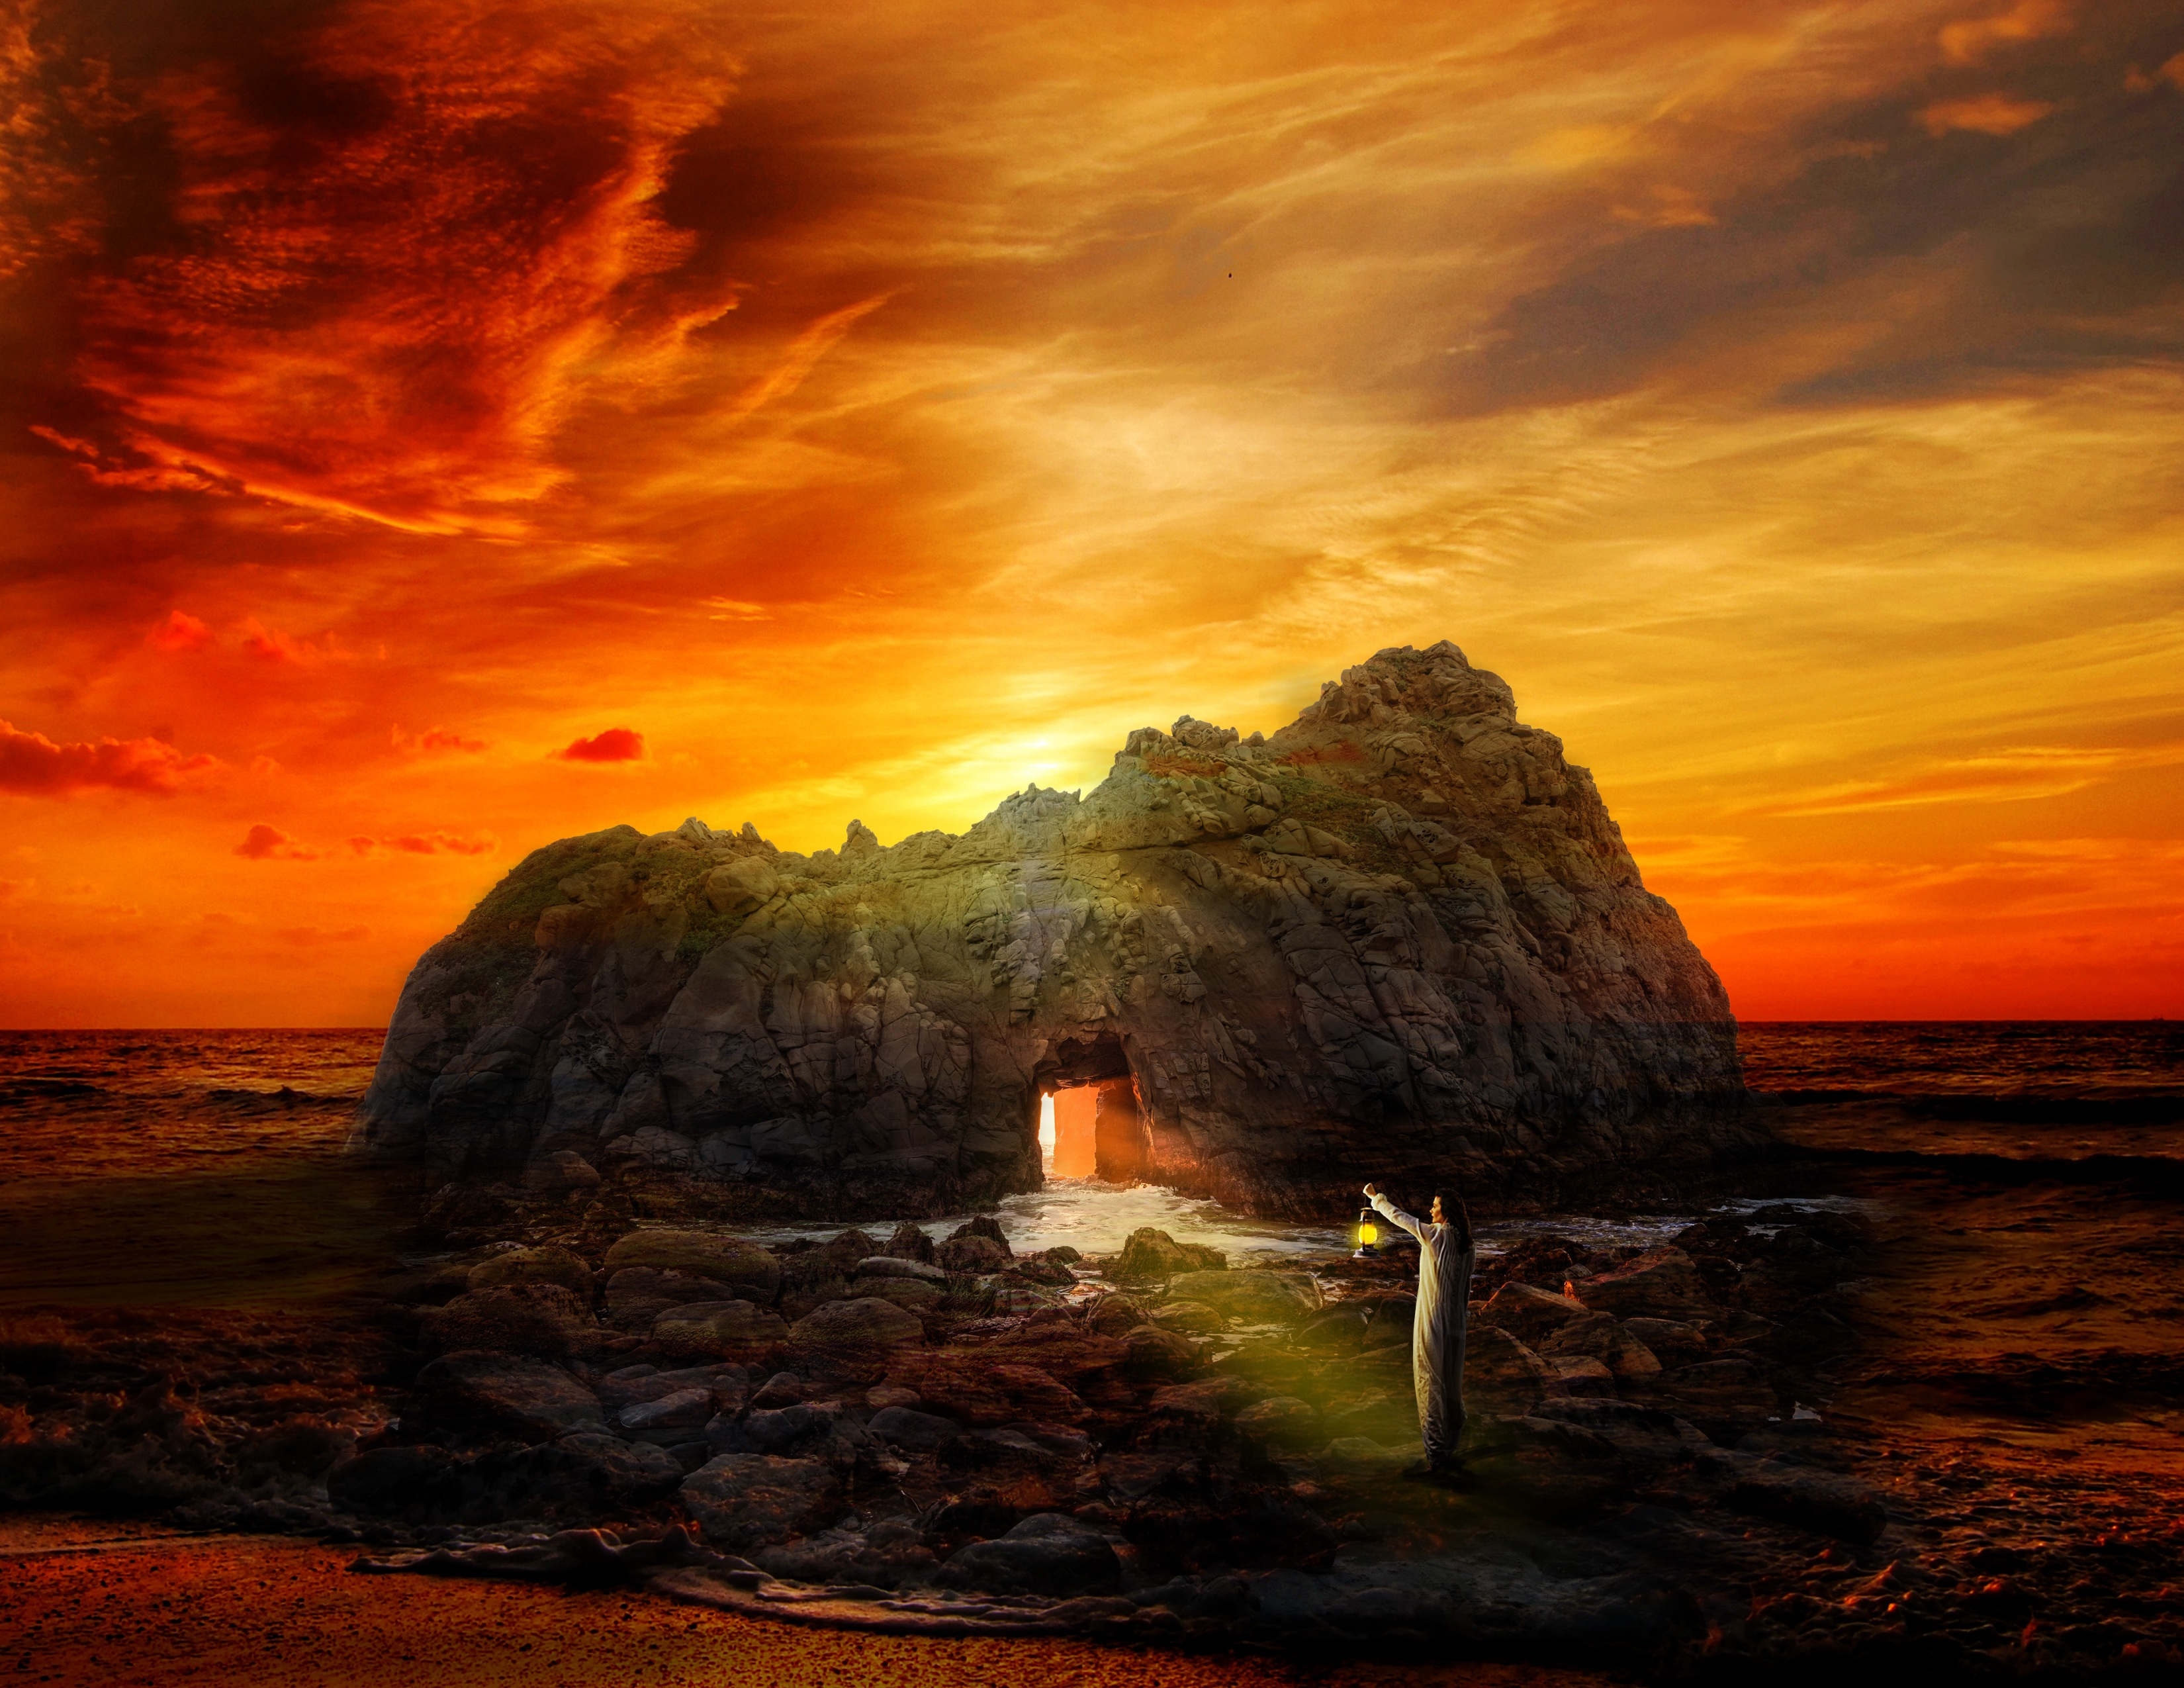 82981 download wallpaper Fantasy, Sea, Rock, Human, Person, Cave, Alone, Lonely screensavers and pictures for free